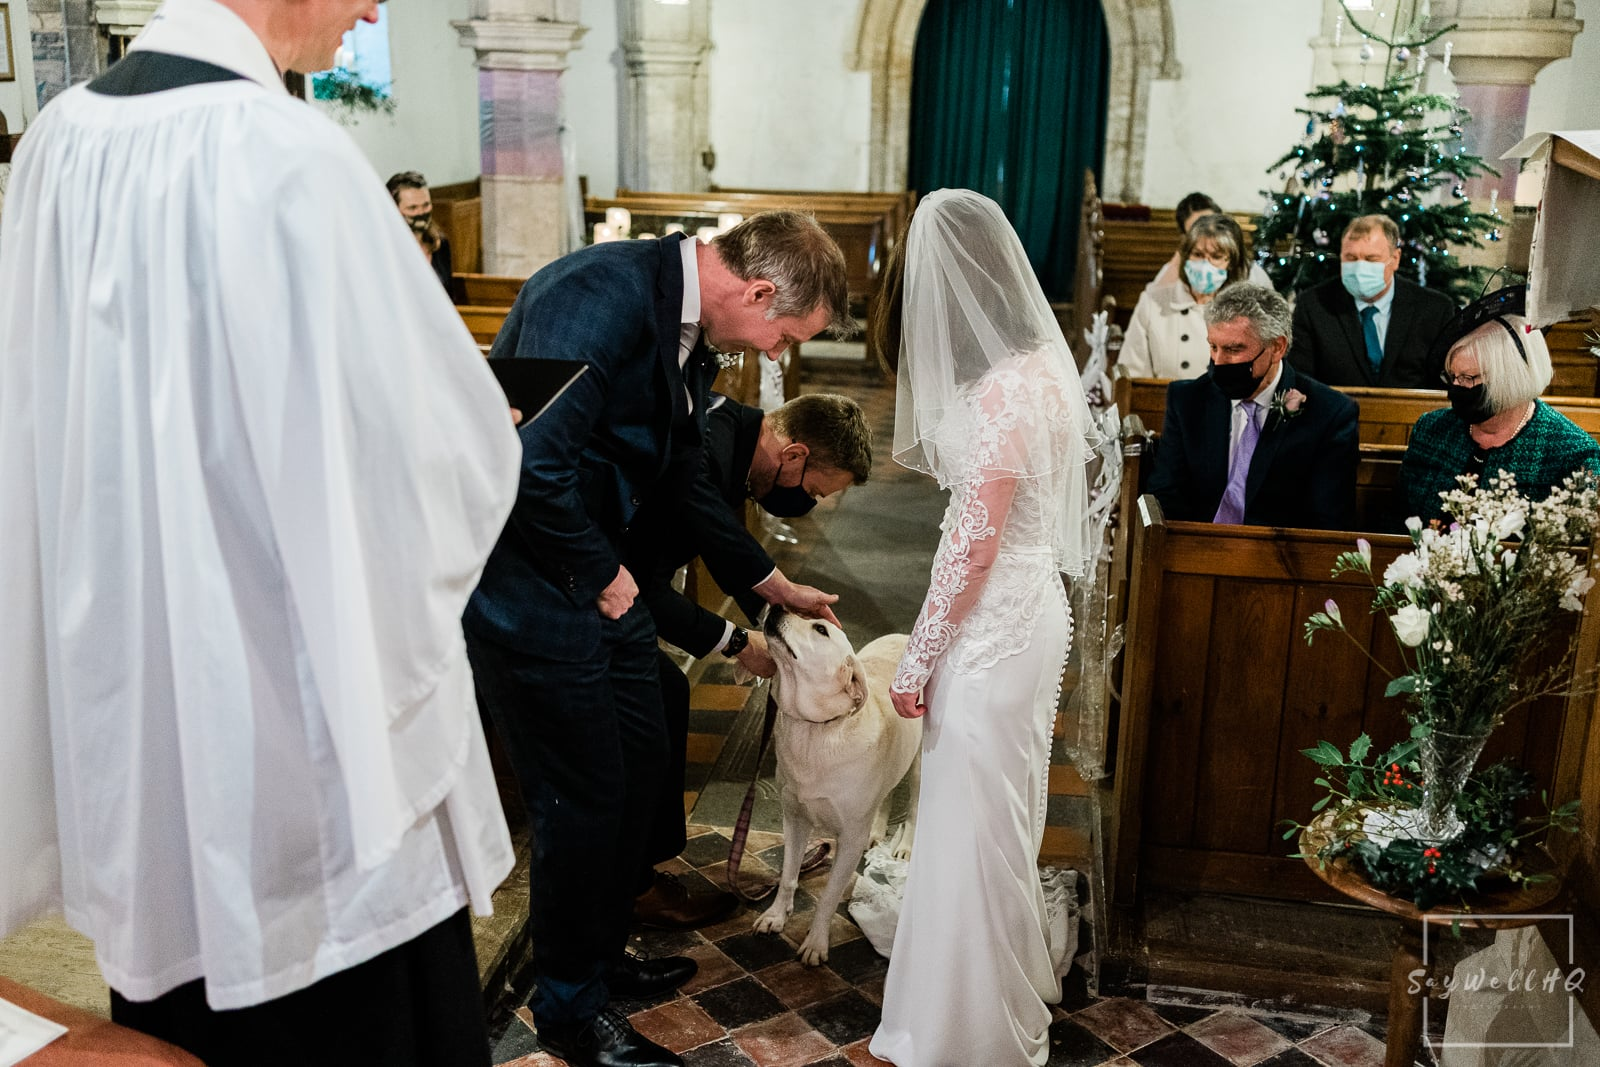 Vale of Belvoir Wedding Photography - dog ring bearer delivering the wedding rings to the bride and groom